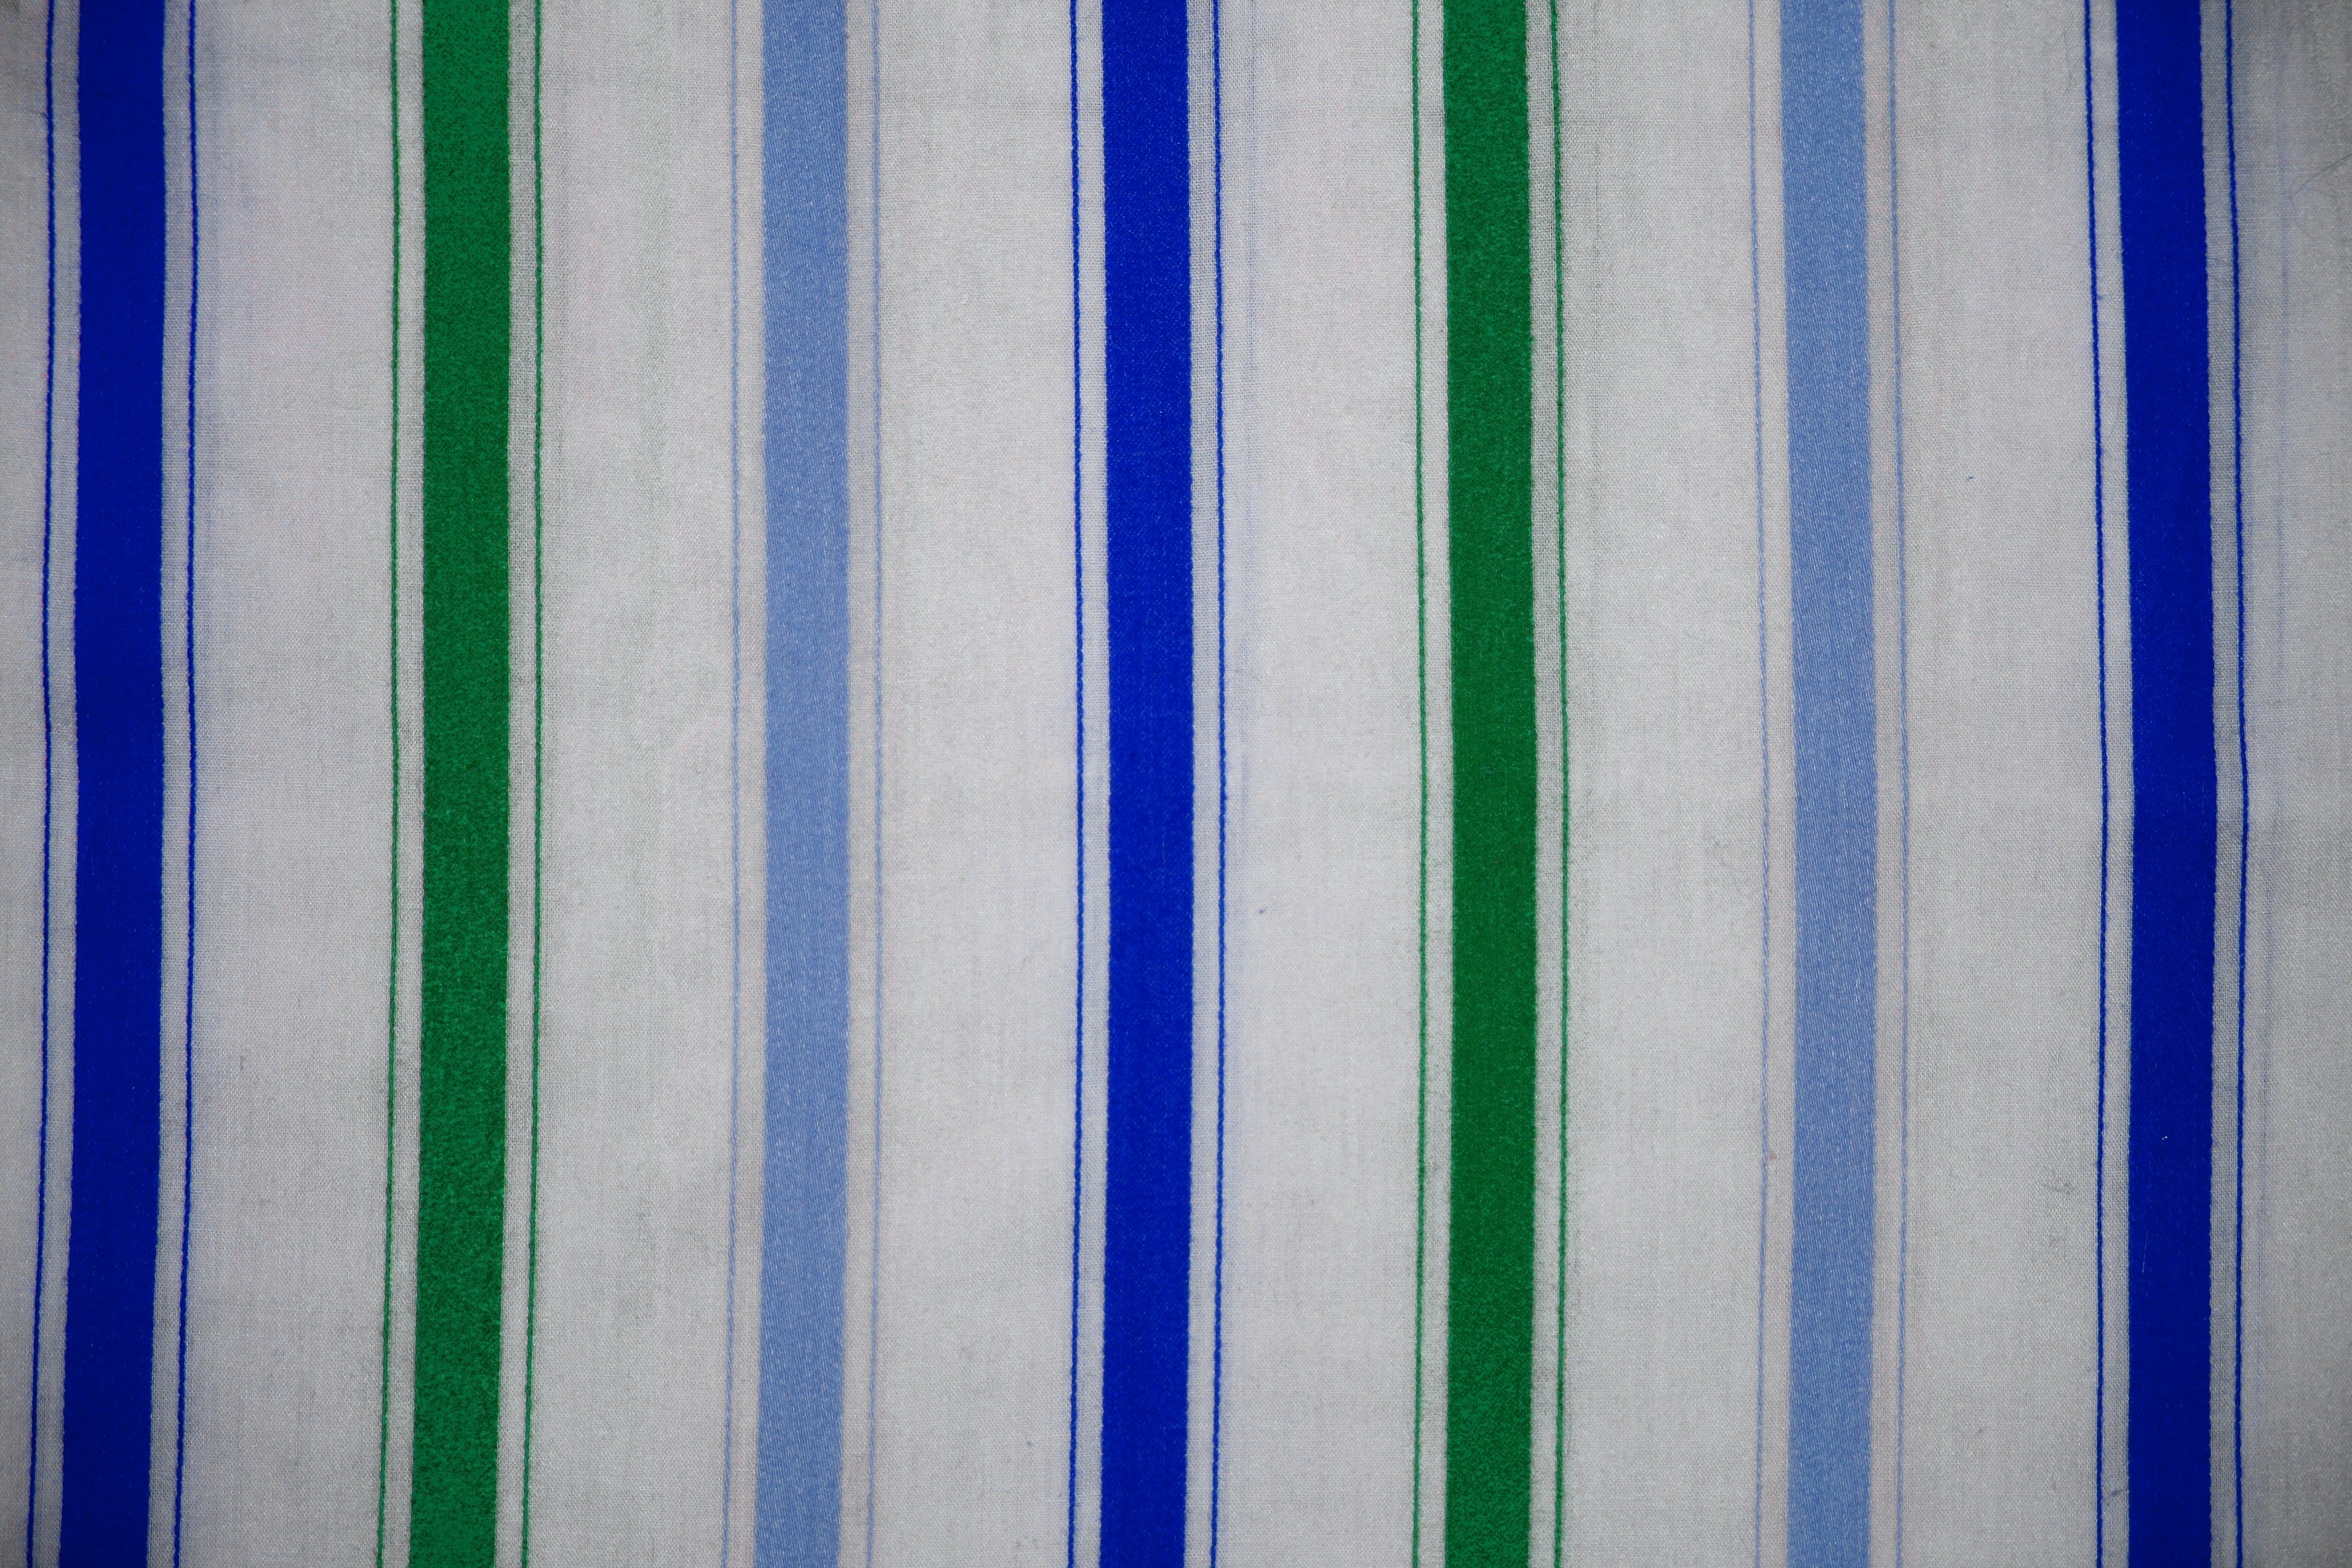 Stripe Blue Green And White: Striped Fabric Texture Green And Blue On White